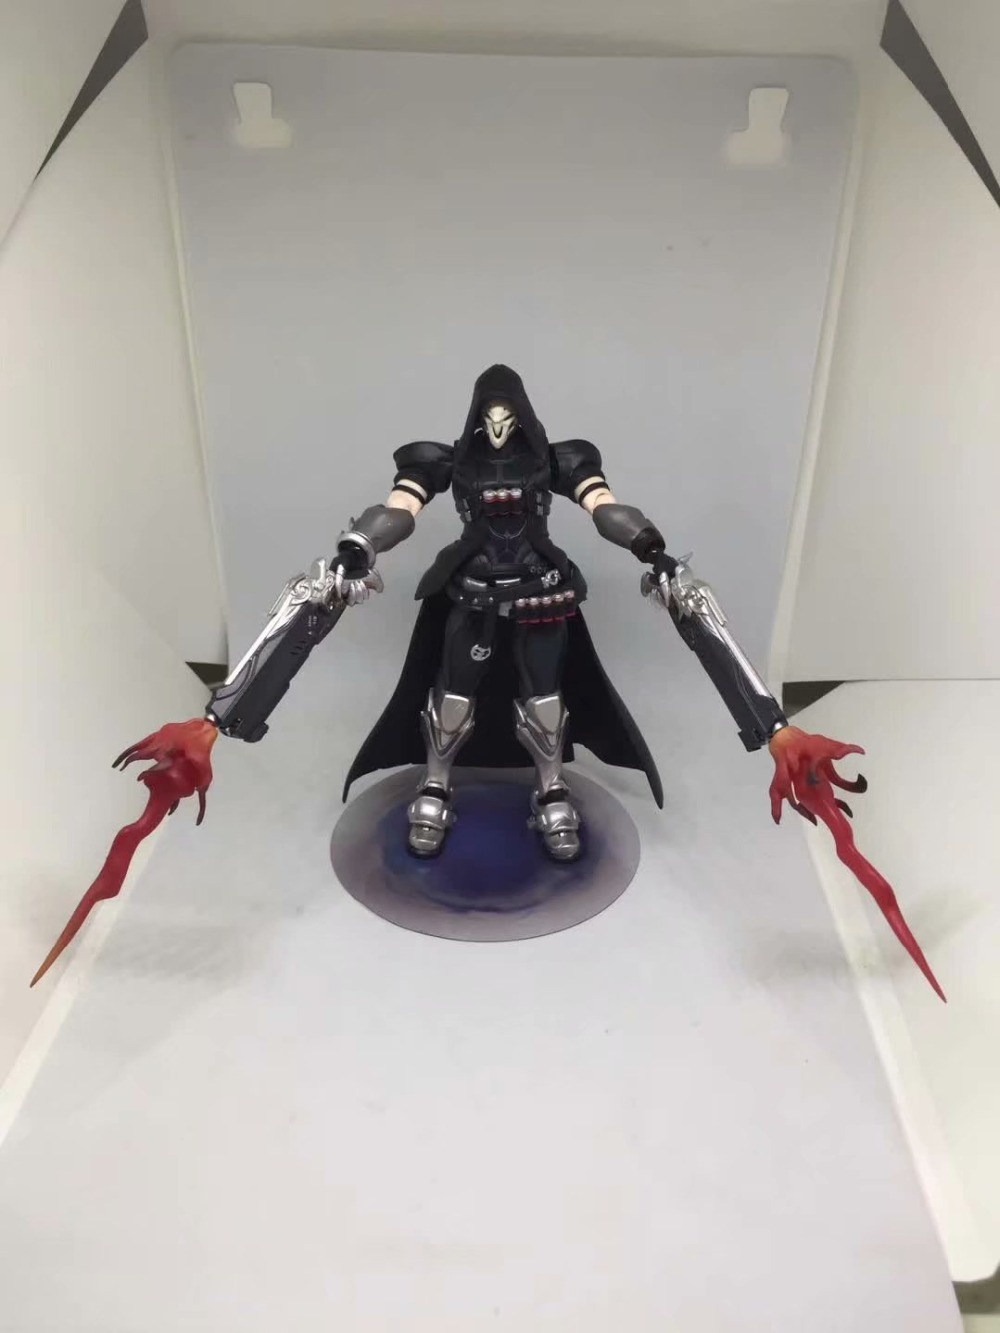 Ow Overwatches 393 Reaper Series PVC Action Figure Collectible Model Toys 17cm 3